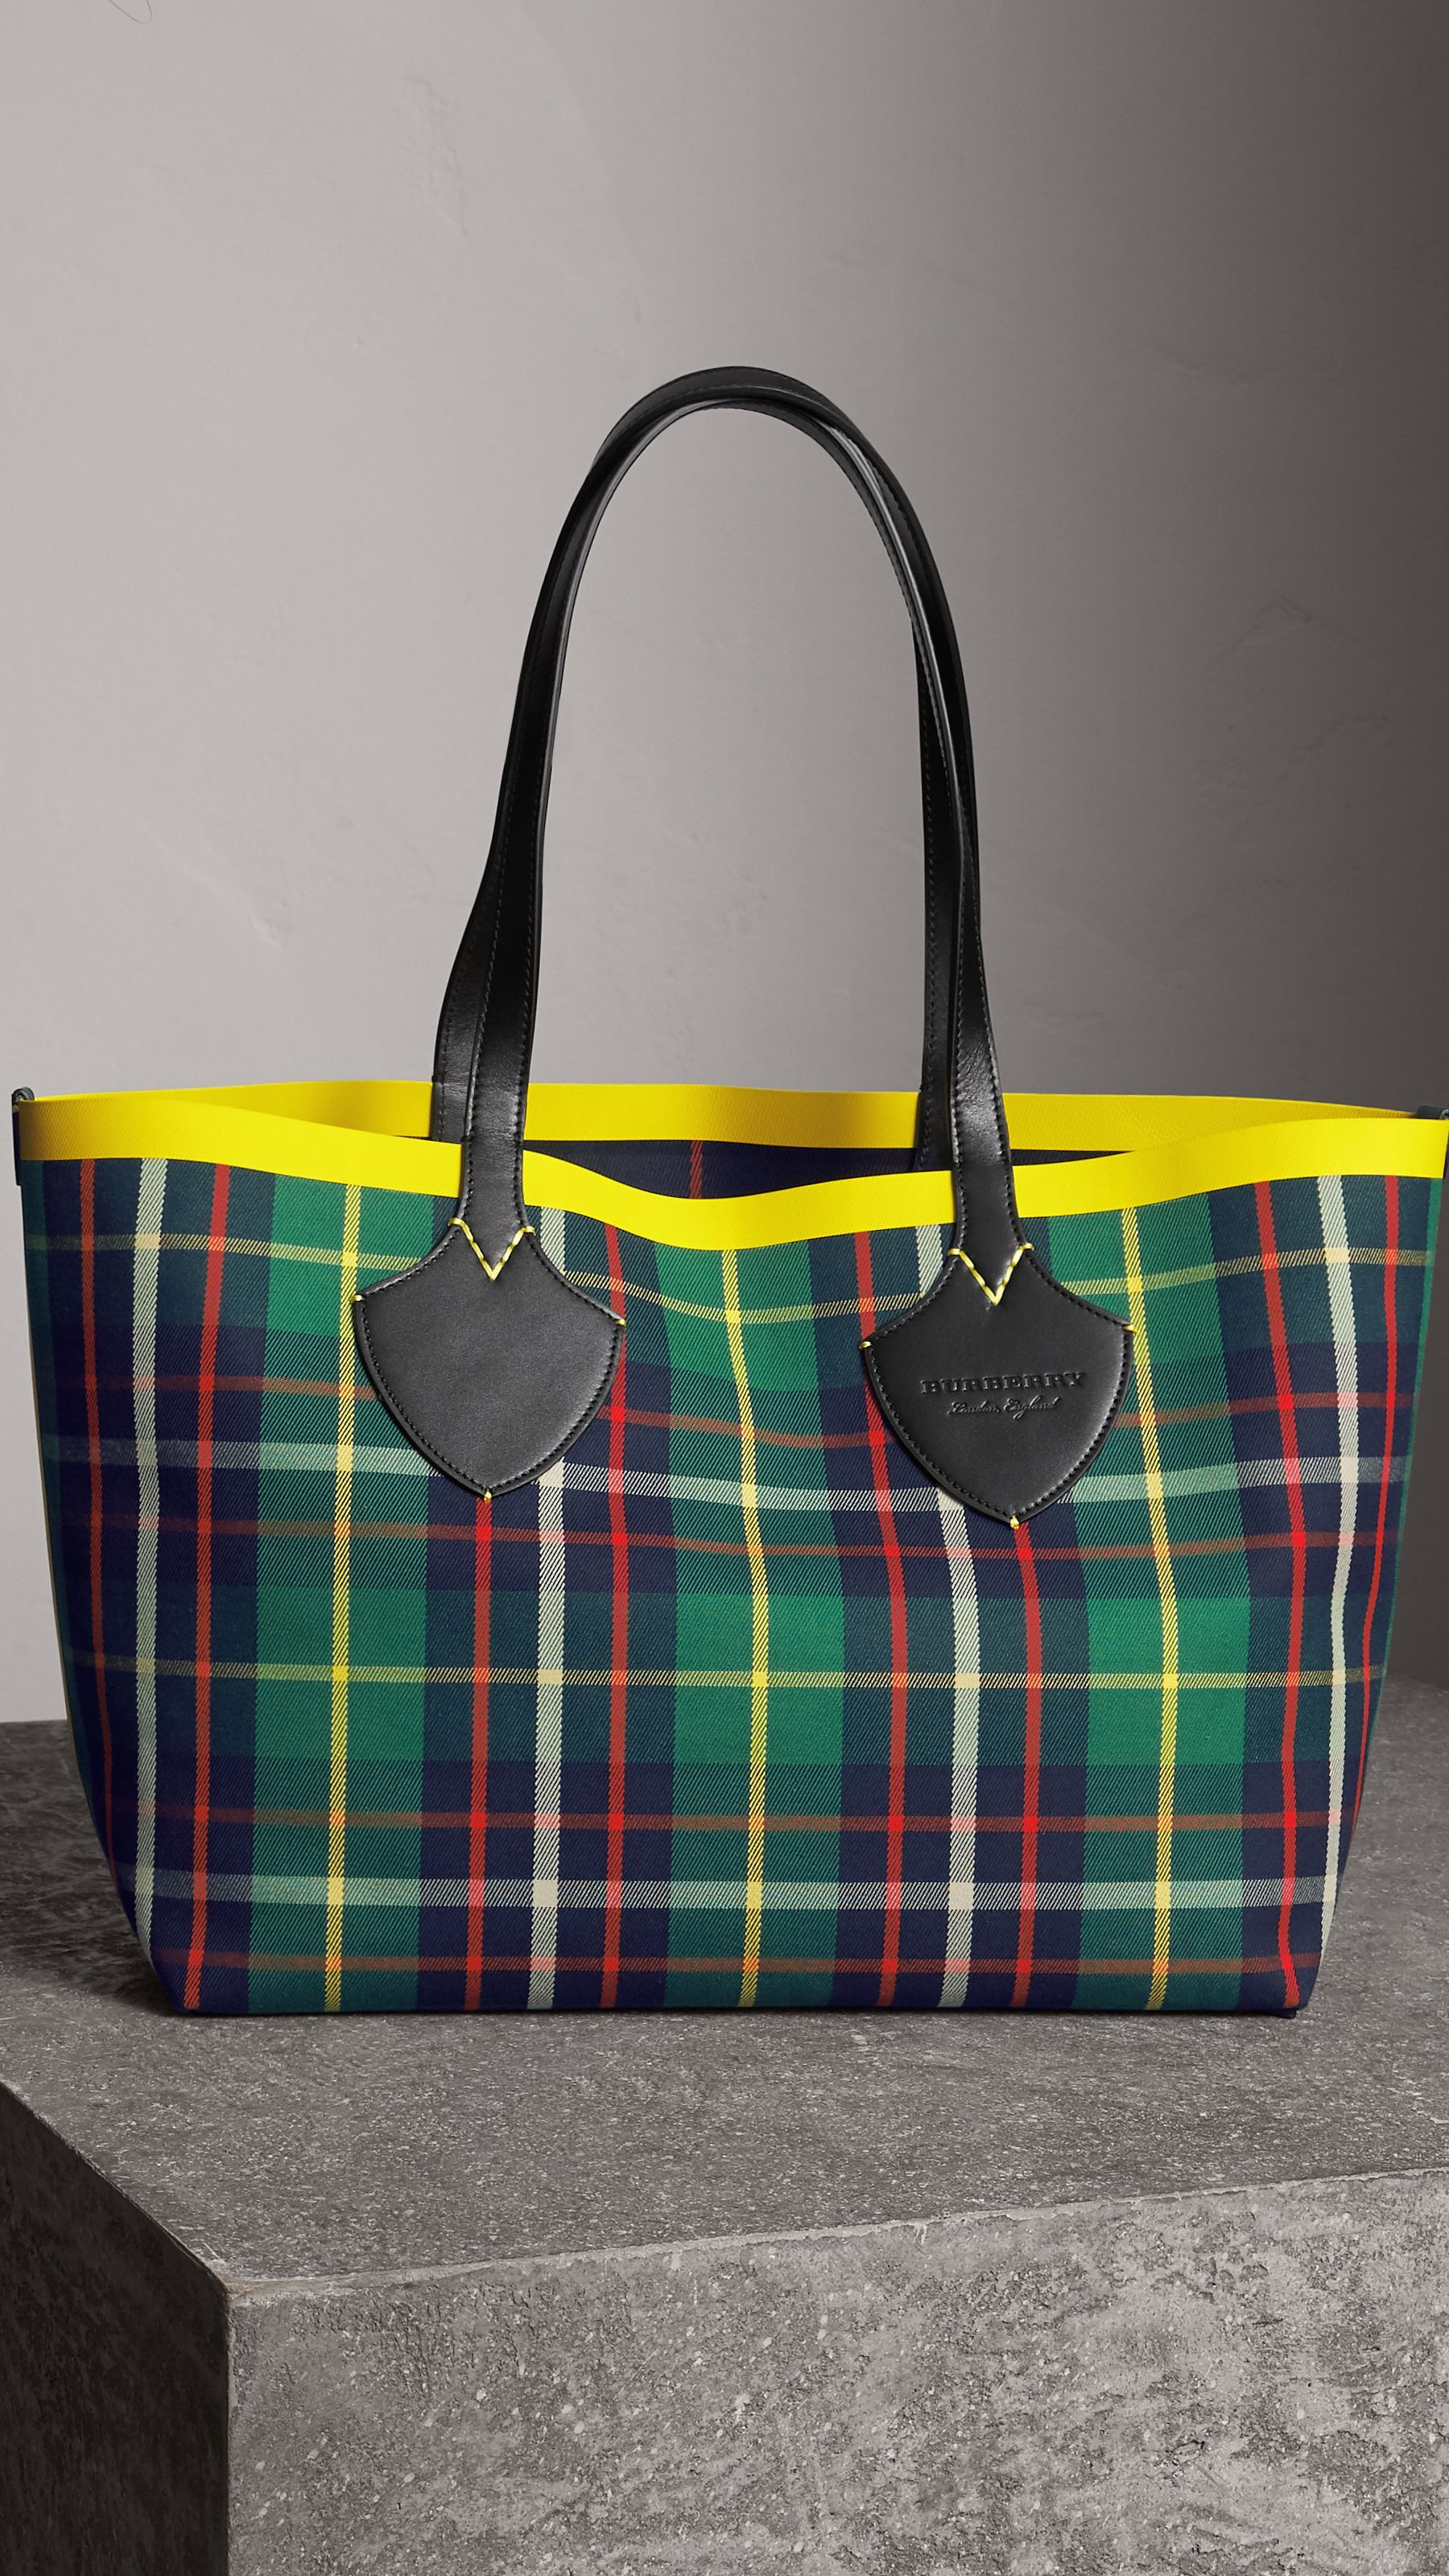 e162741279d7 The Medium Giant Reversible Tote in Tartan Cotton in For Green deep Navy